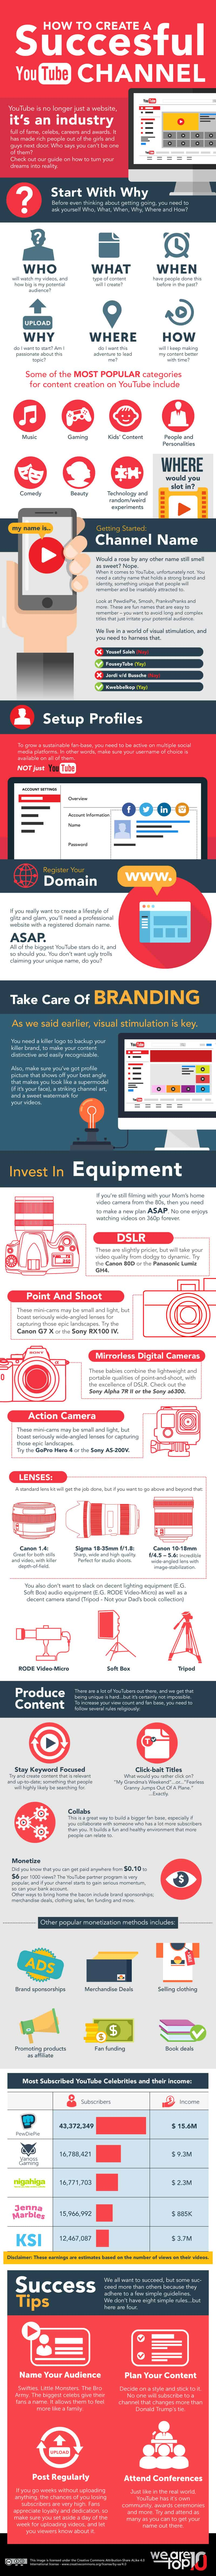 how-to-start-a-successful-youtube-channel-infographic